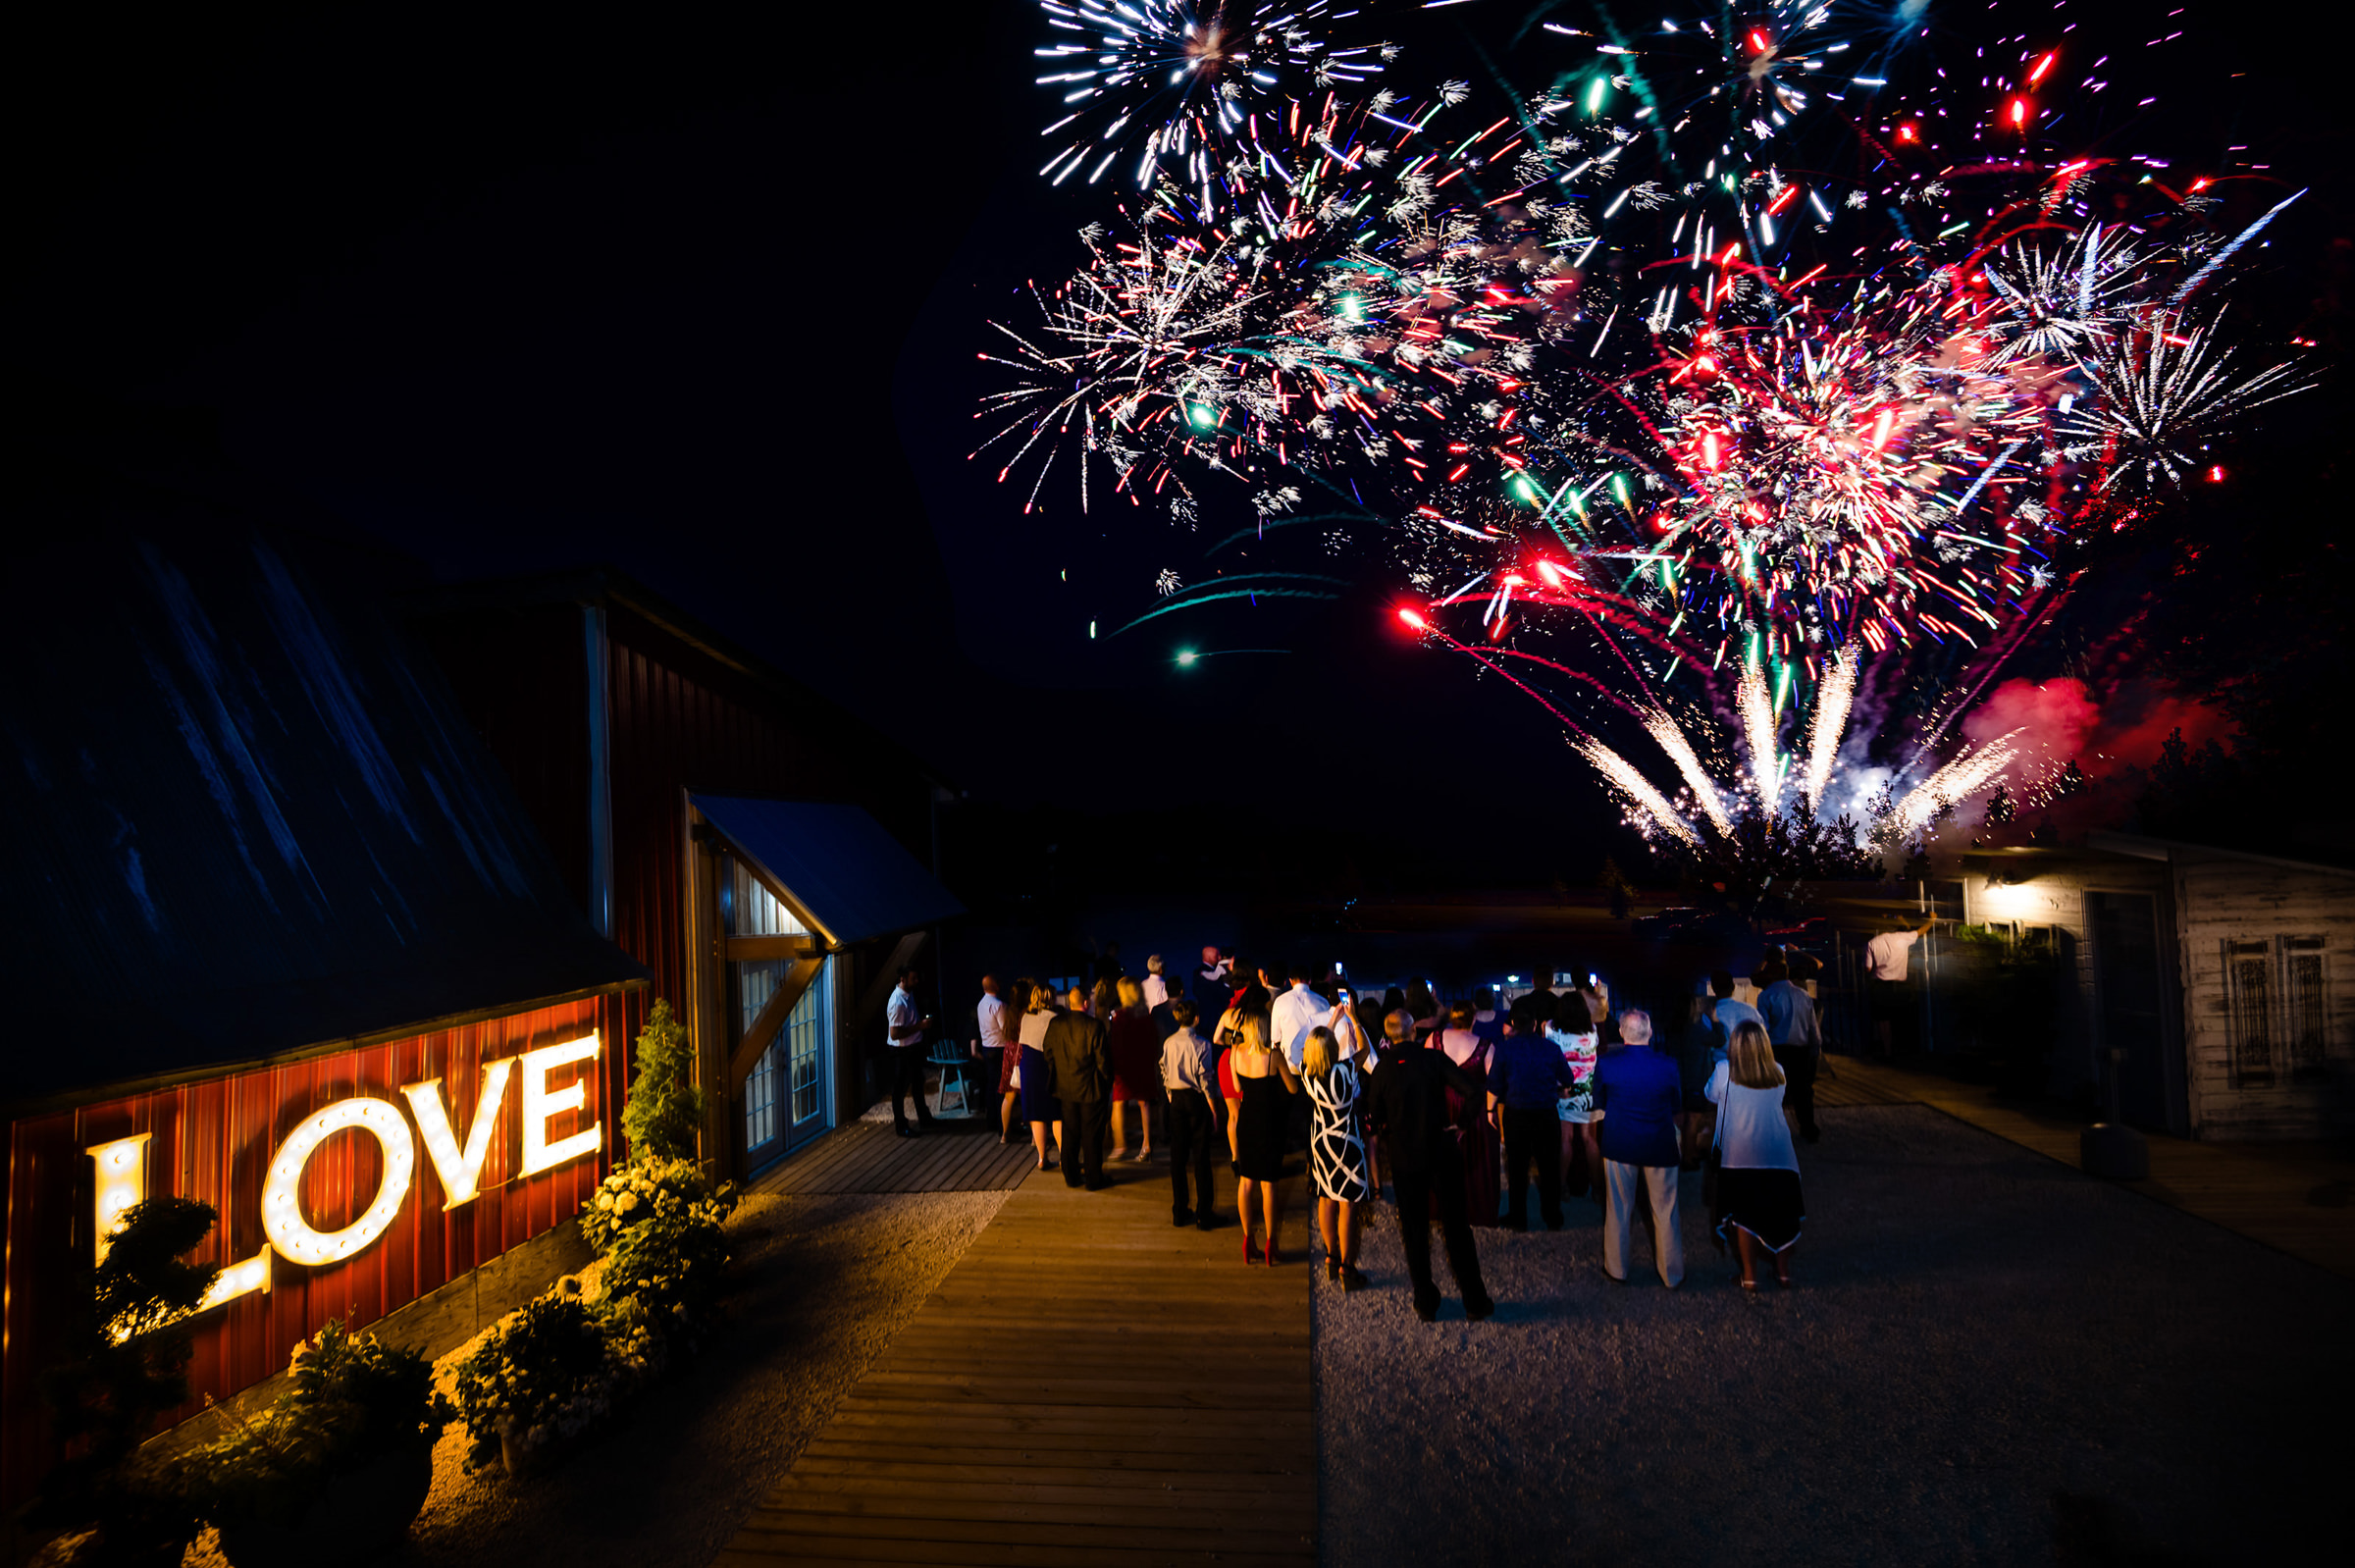 Guests gather for fireworks with love sign in background - photo by Moore Photography